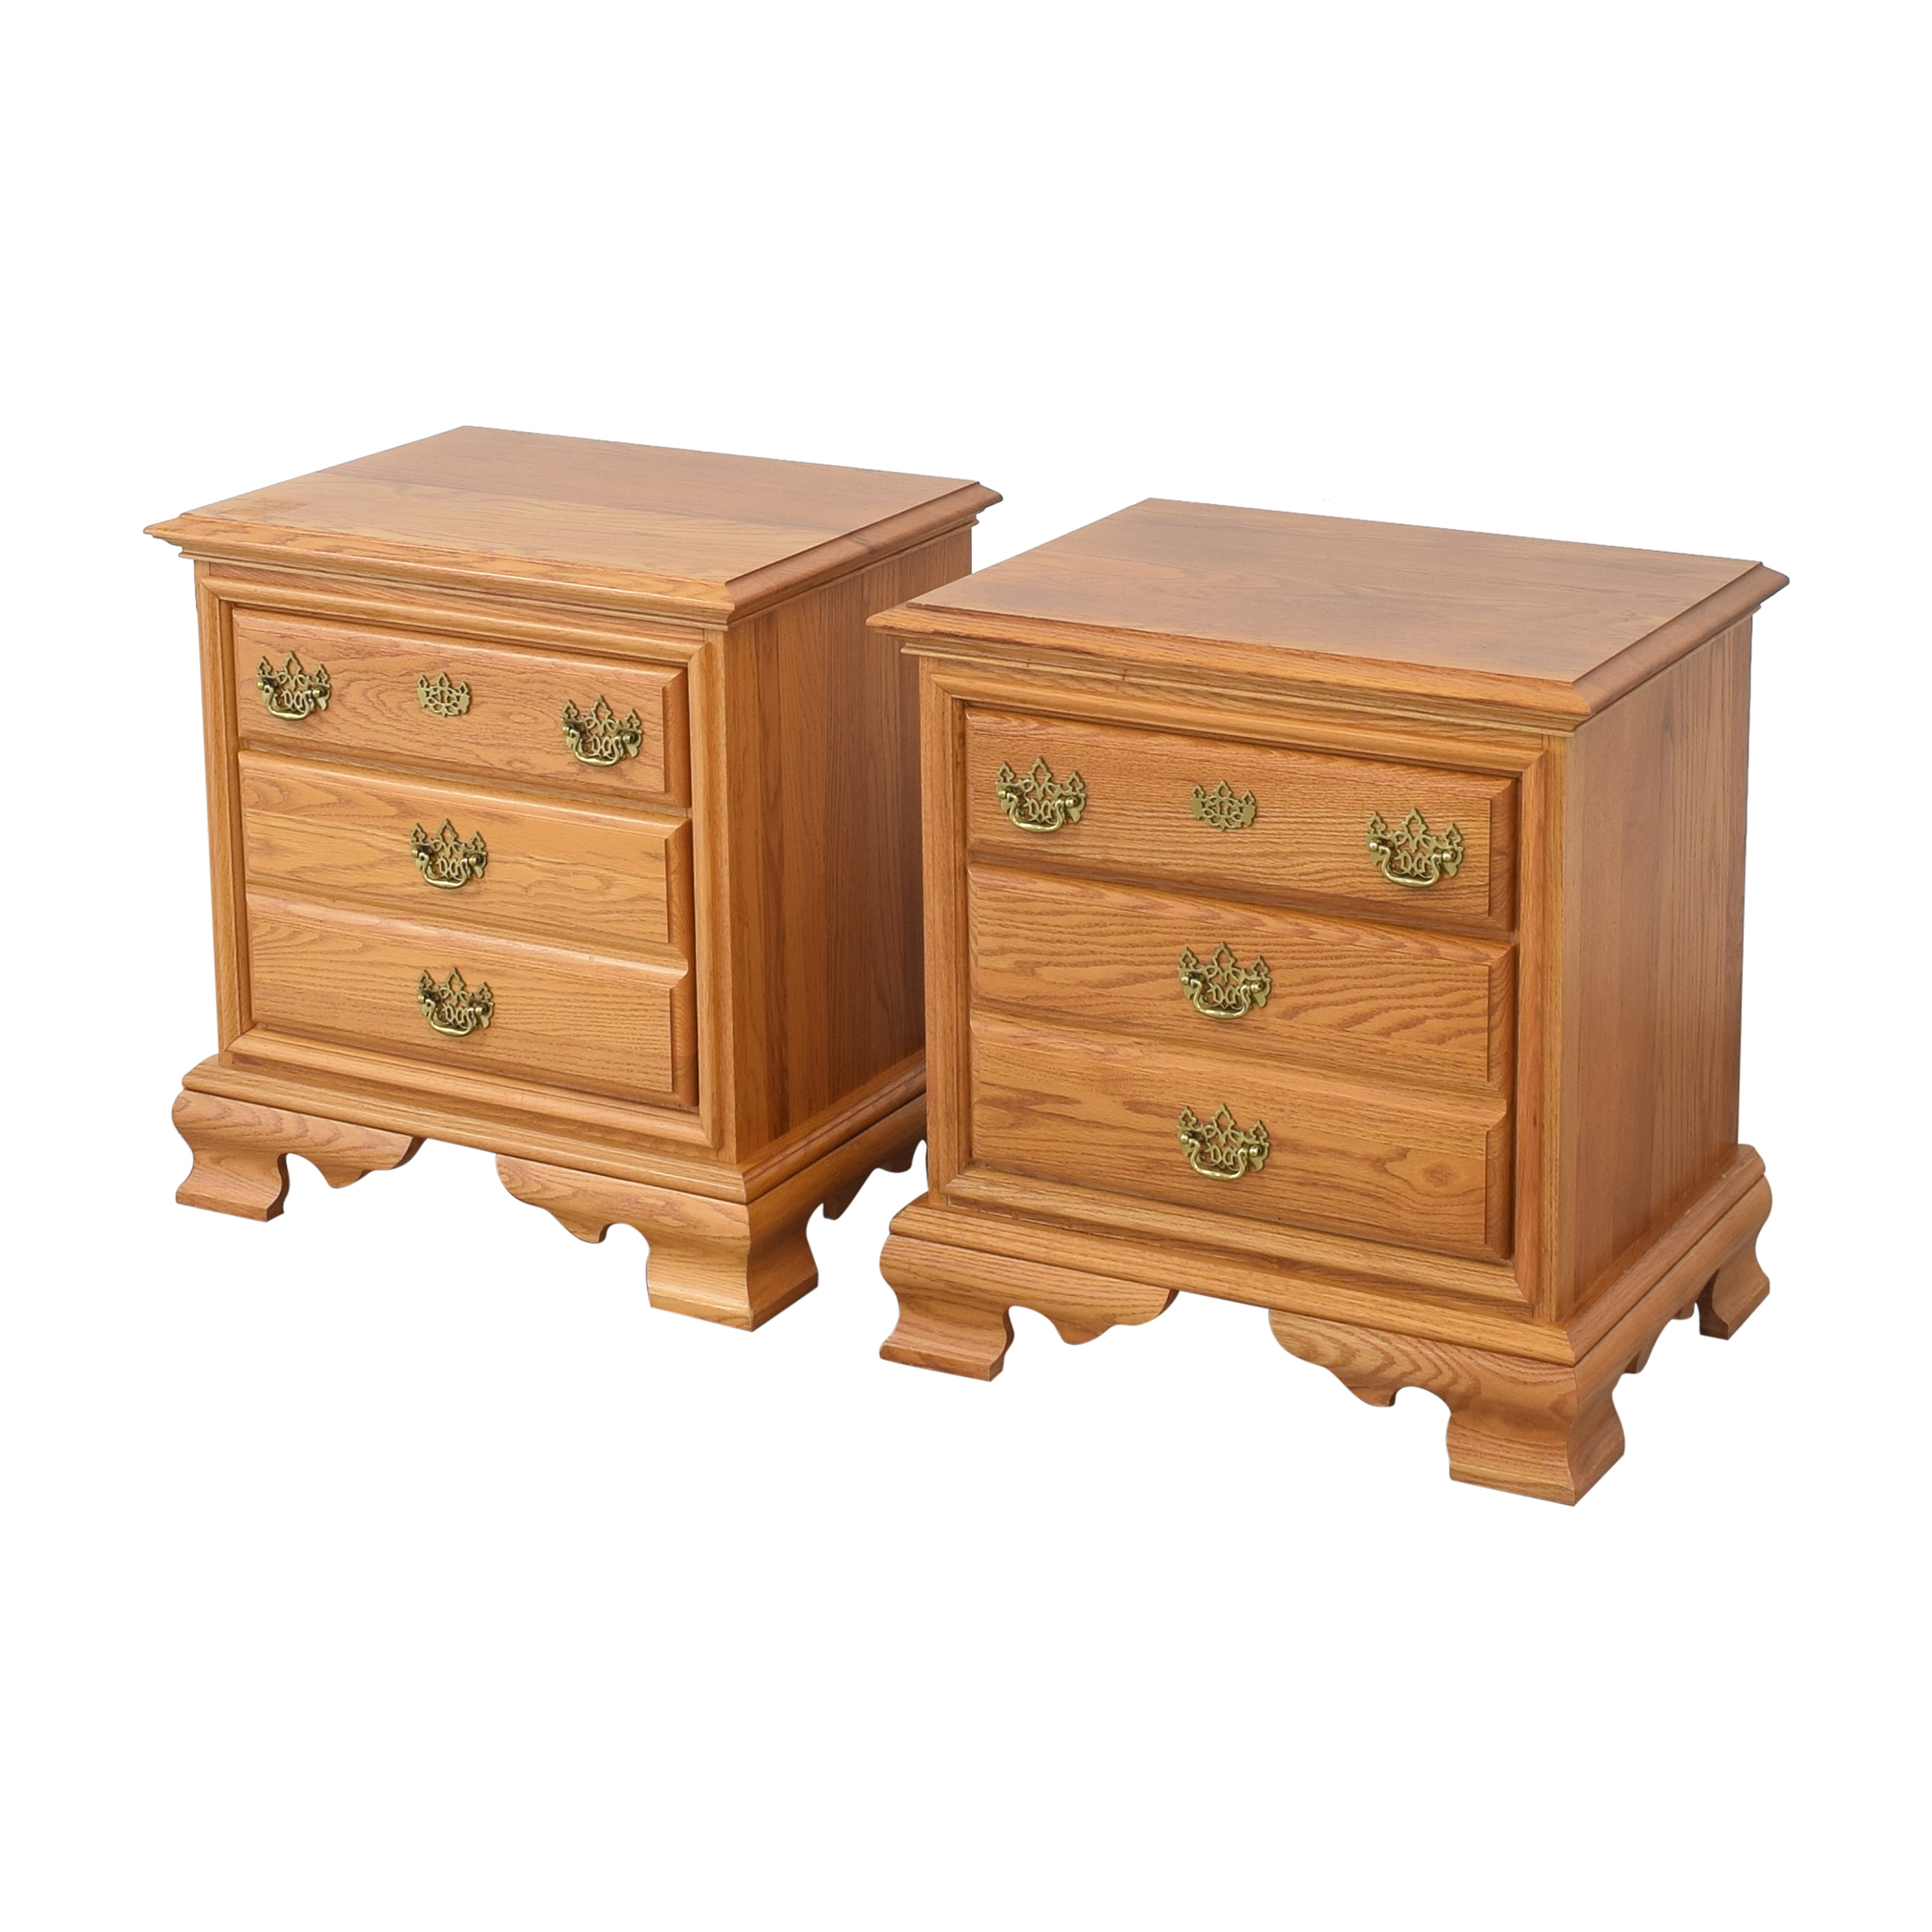 Masterfield Furniture Masterfield Furniture Two Drawer End Tables End Tables